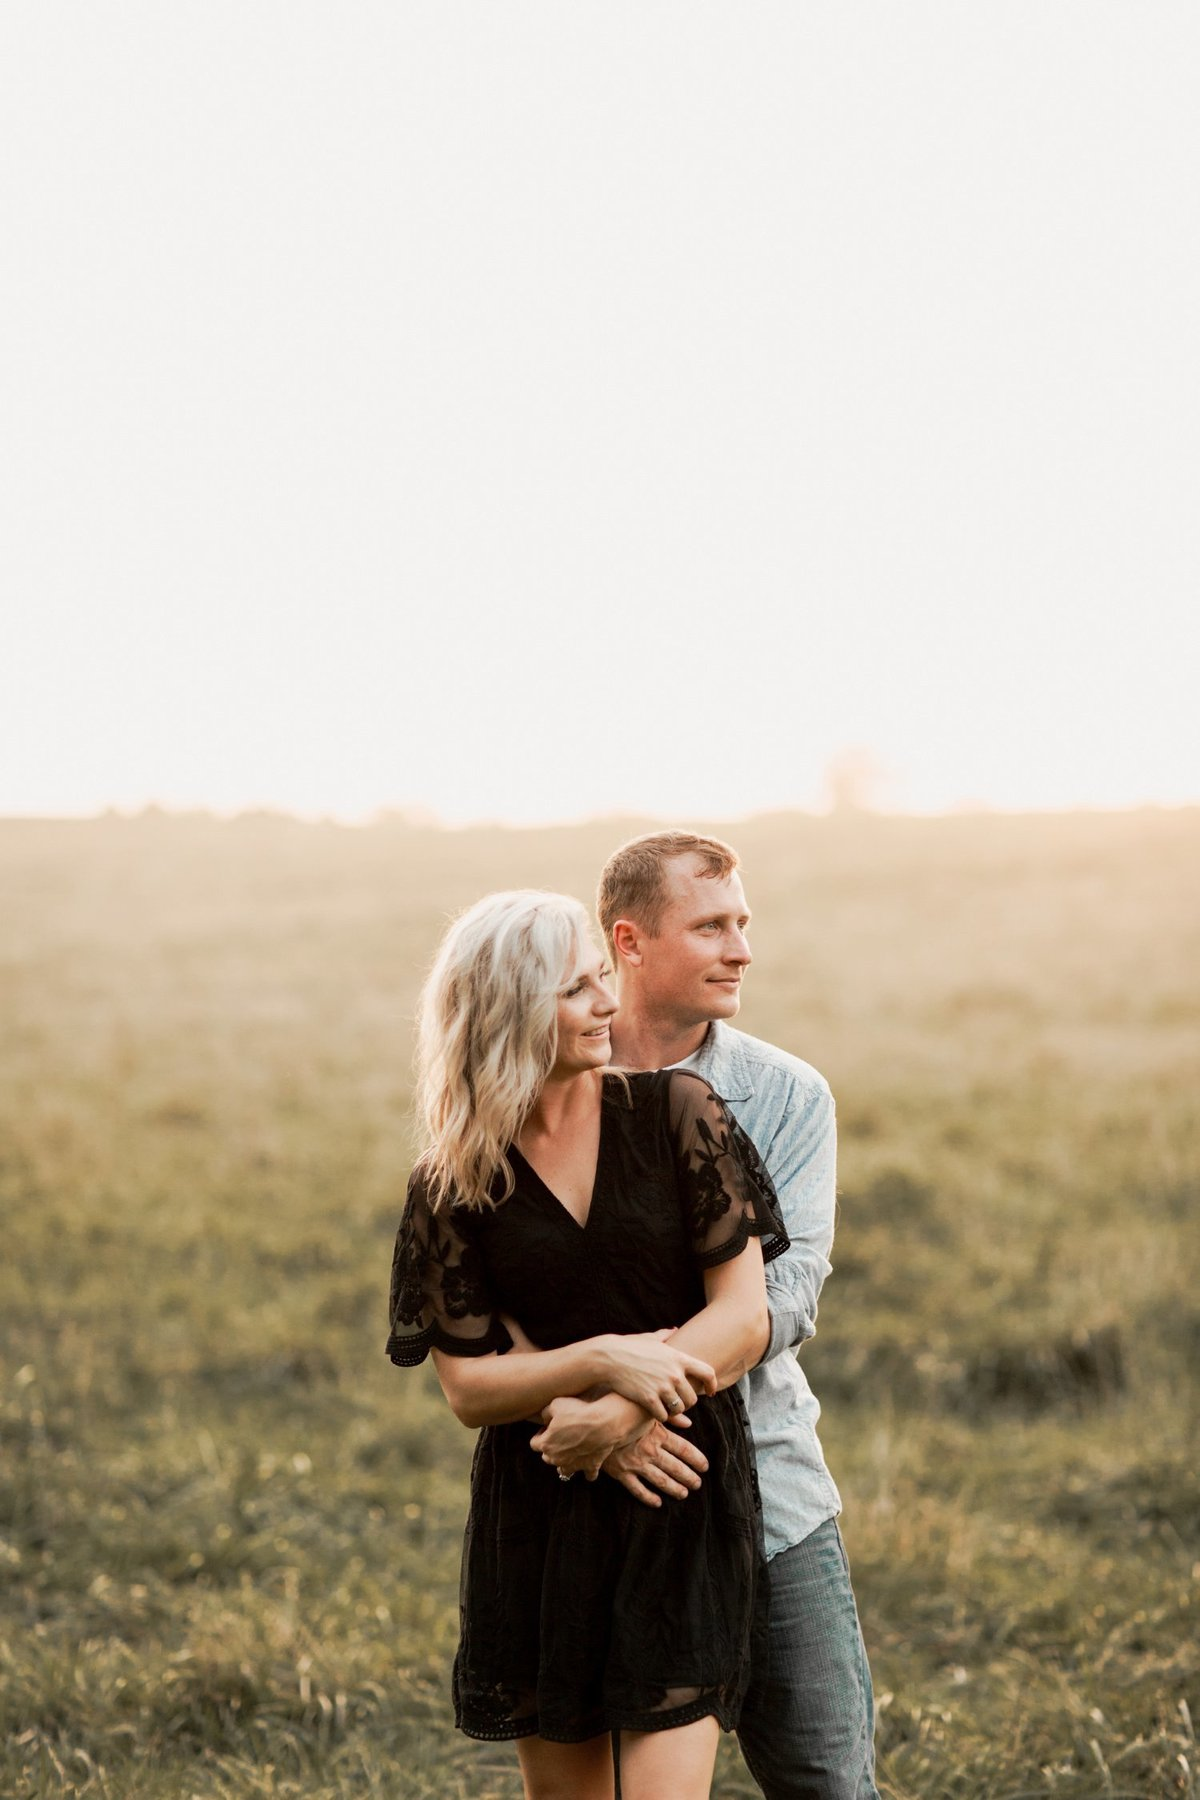 Kansas City Salt Lake City Destination Wedding Photographer_0396